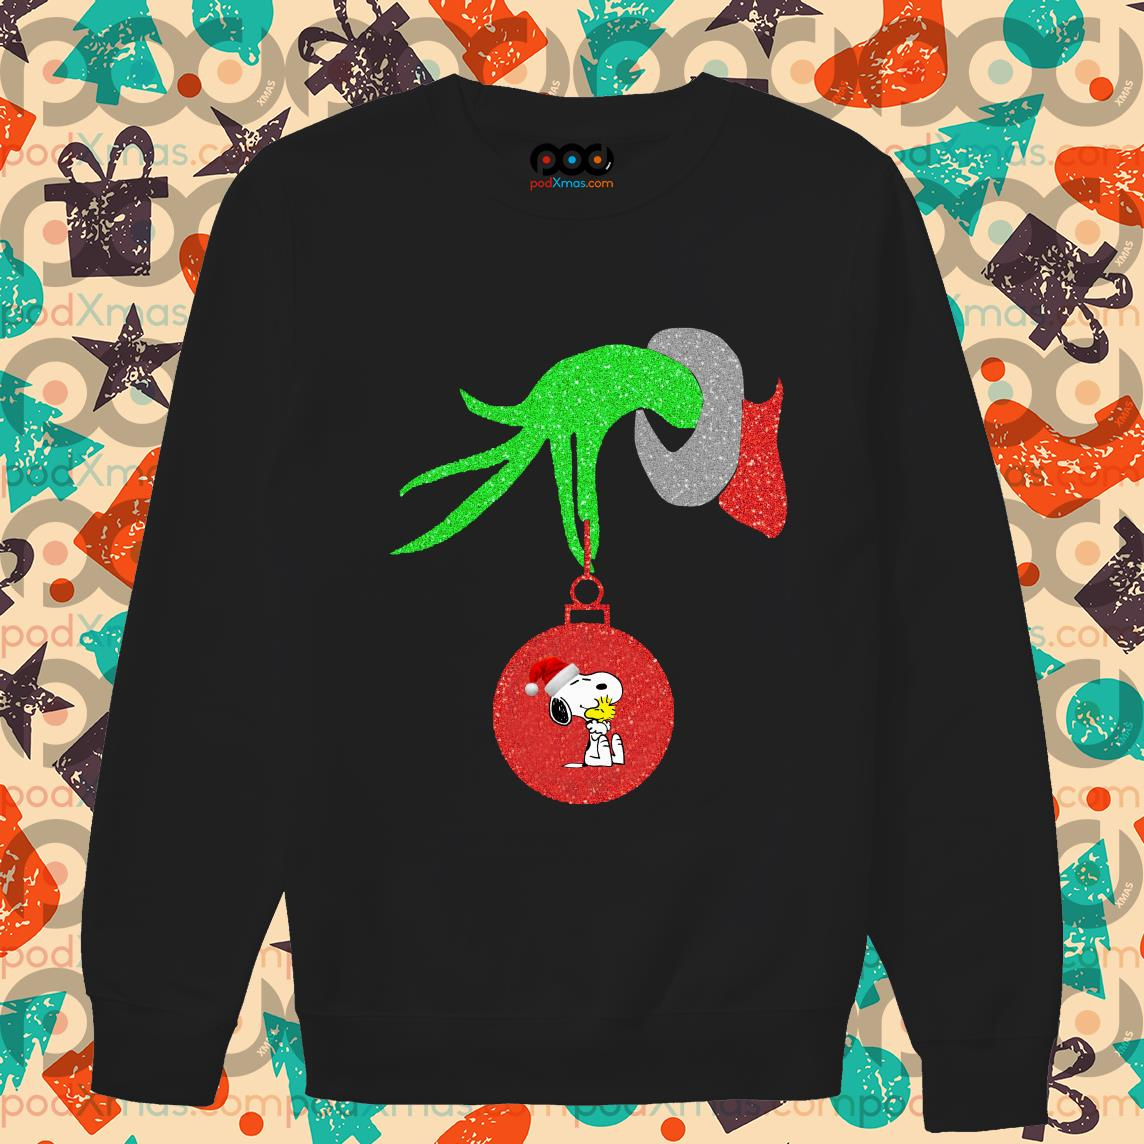 Grinch Hand holding Snoopy sweater